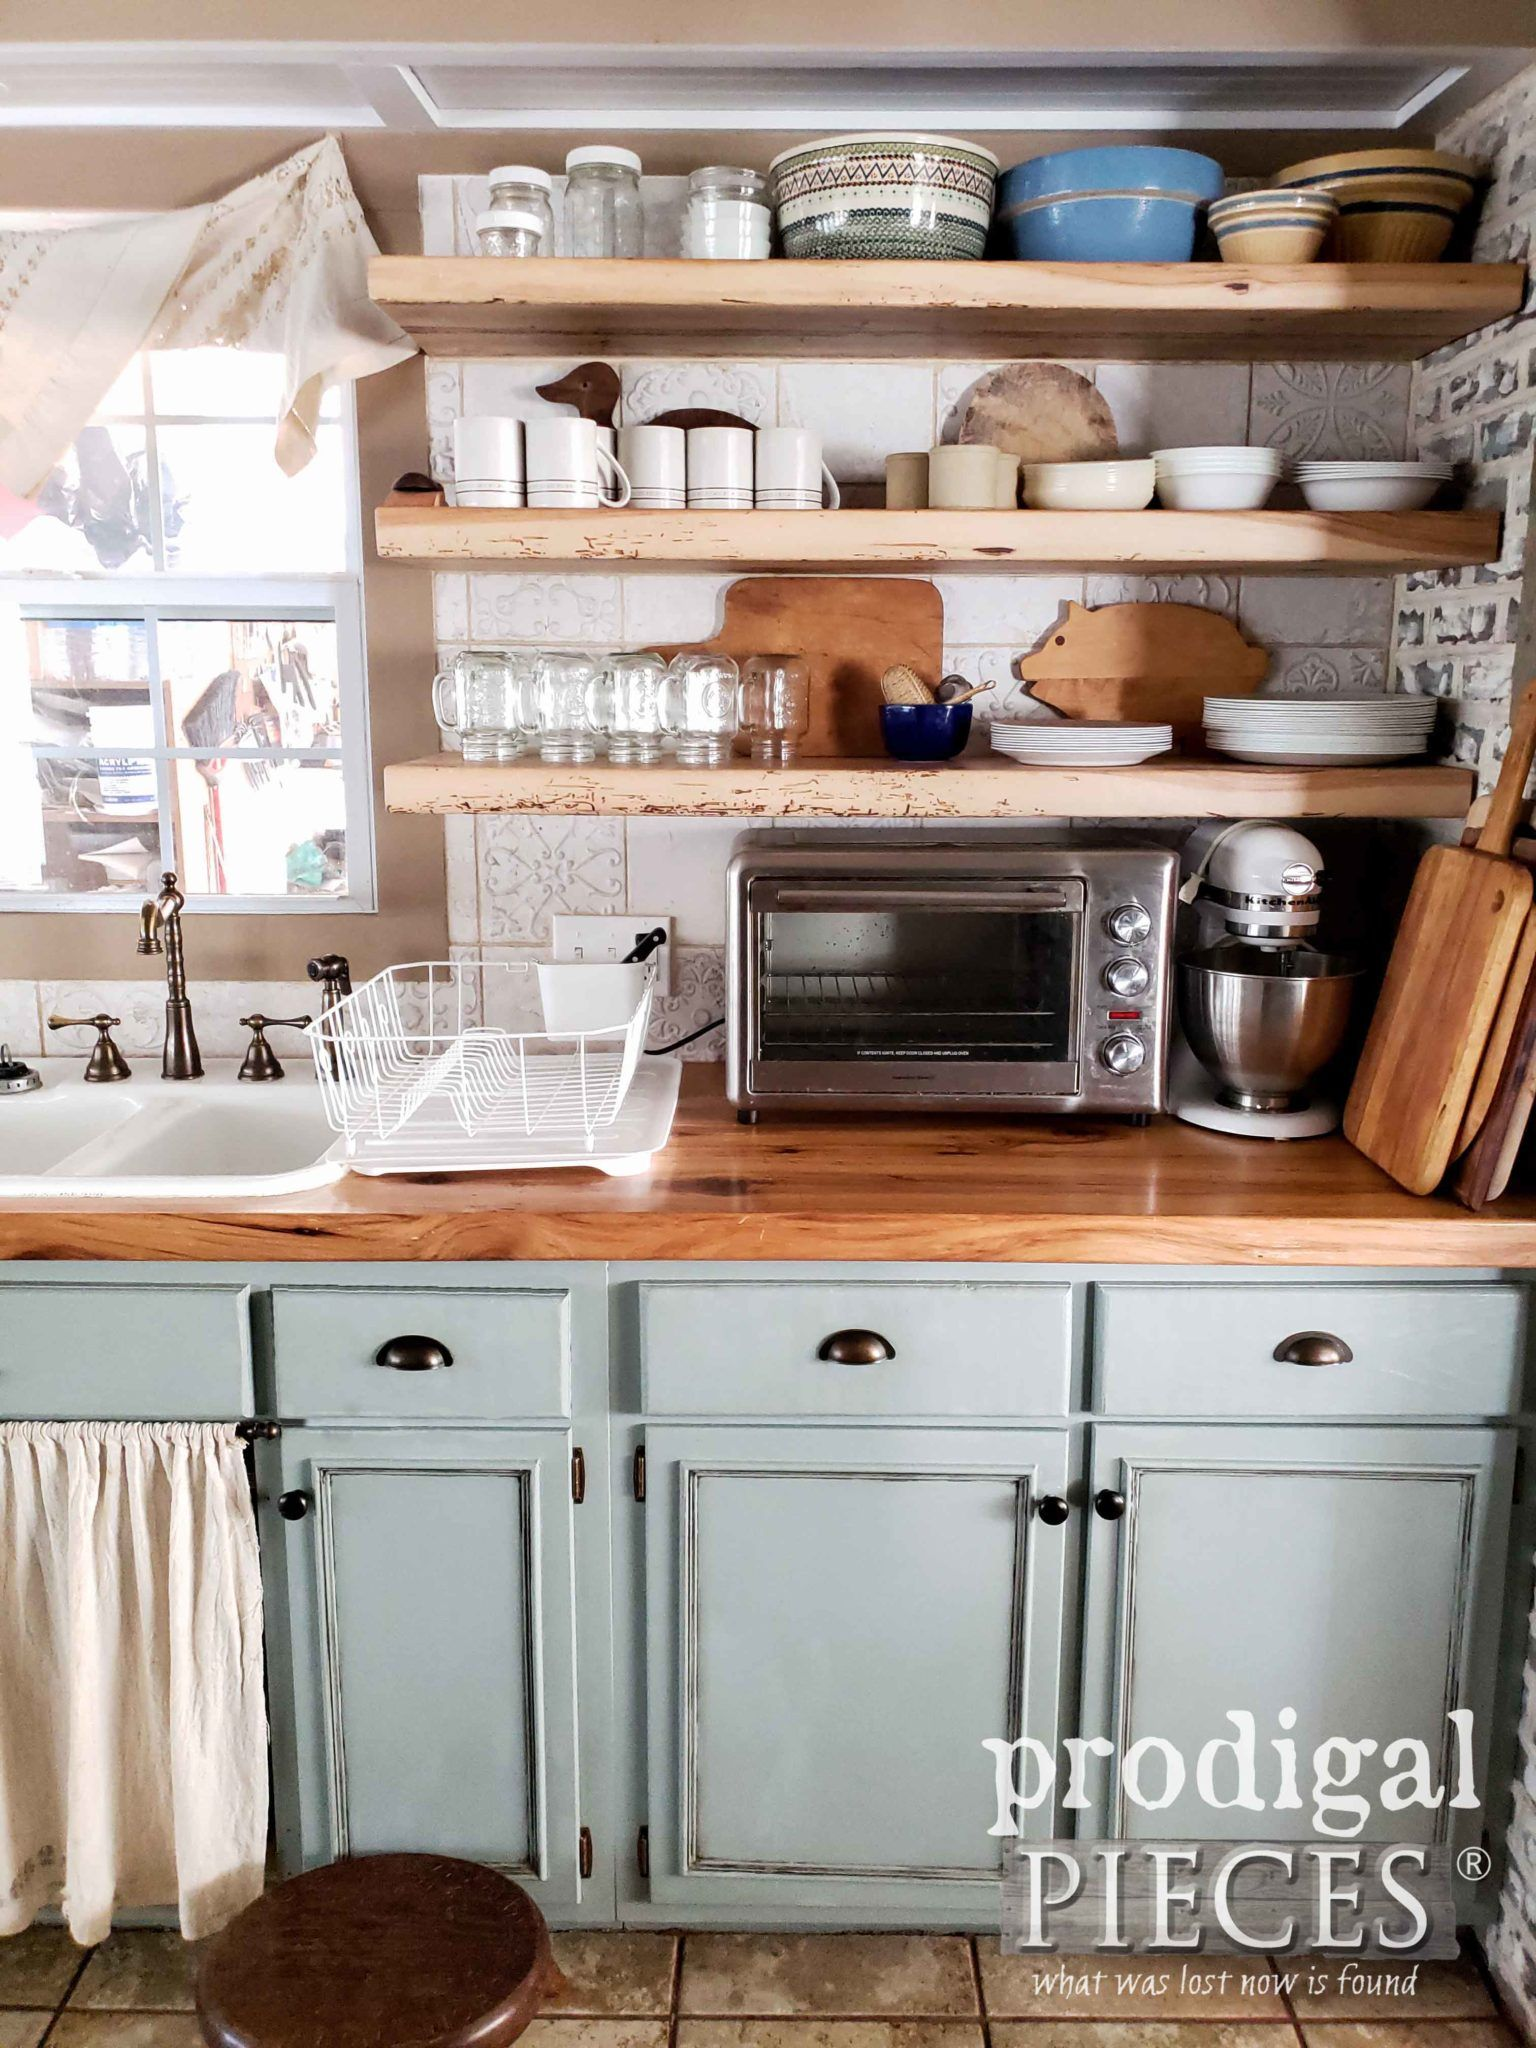 Farmhouse Kitchen Remodel Reveal Prodigal Pieces Budget Kitchen Remodel Kitchen Remodel Layout Kitchen Remodel Small